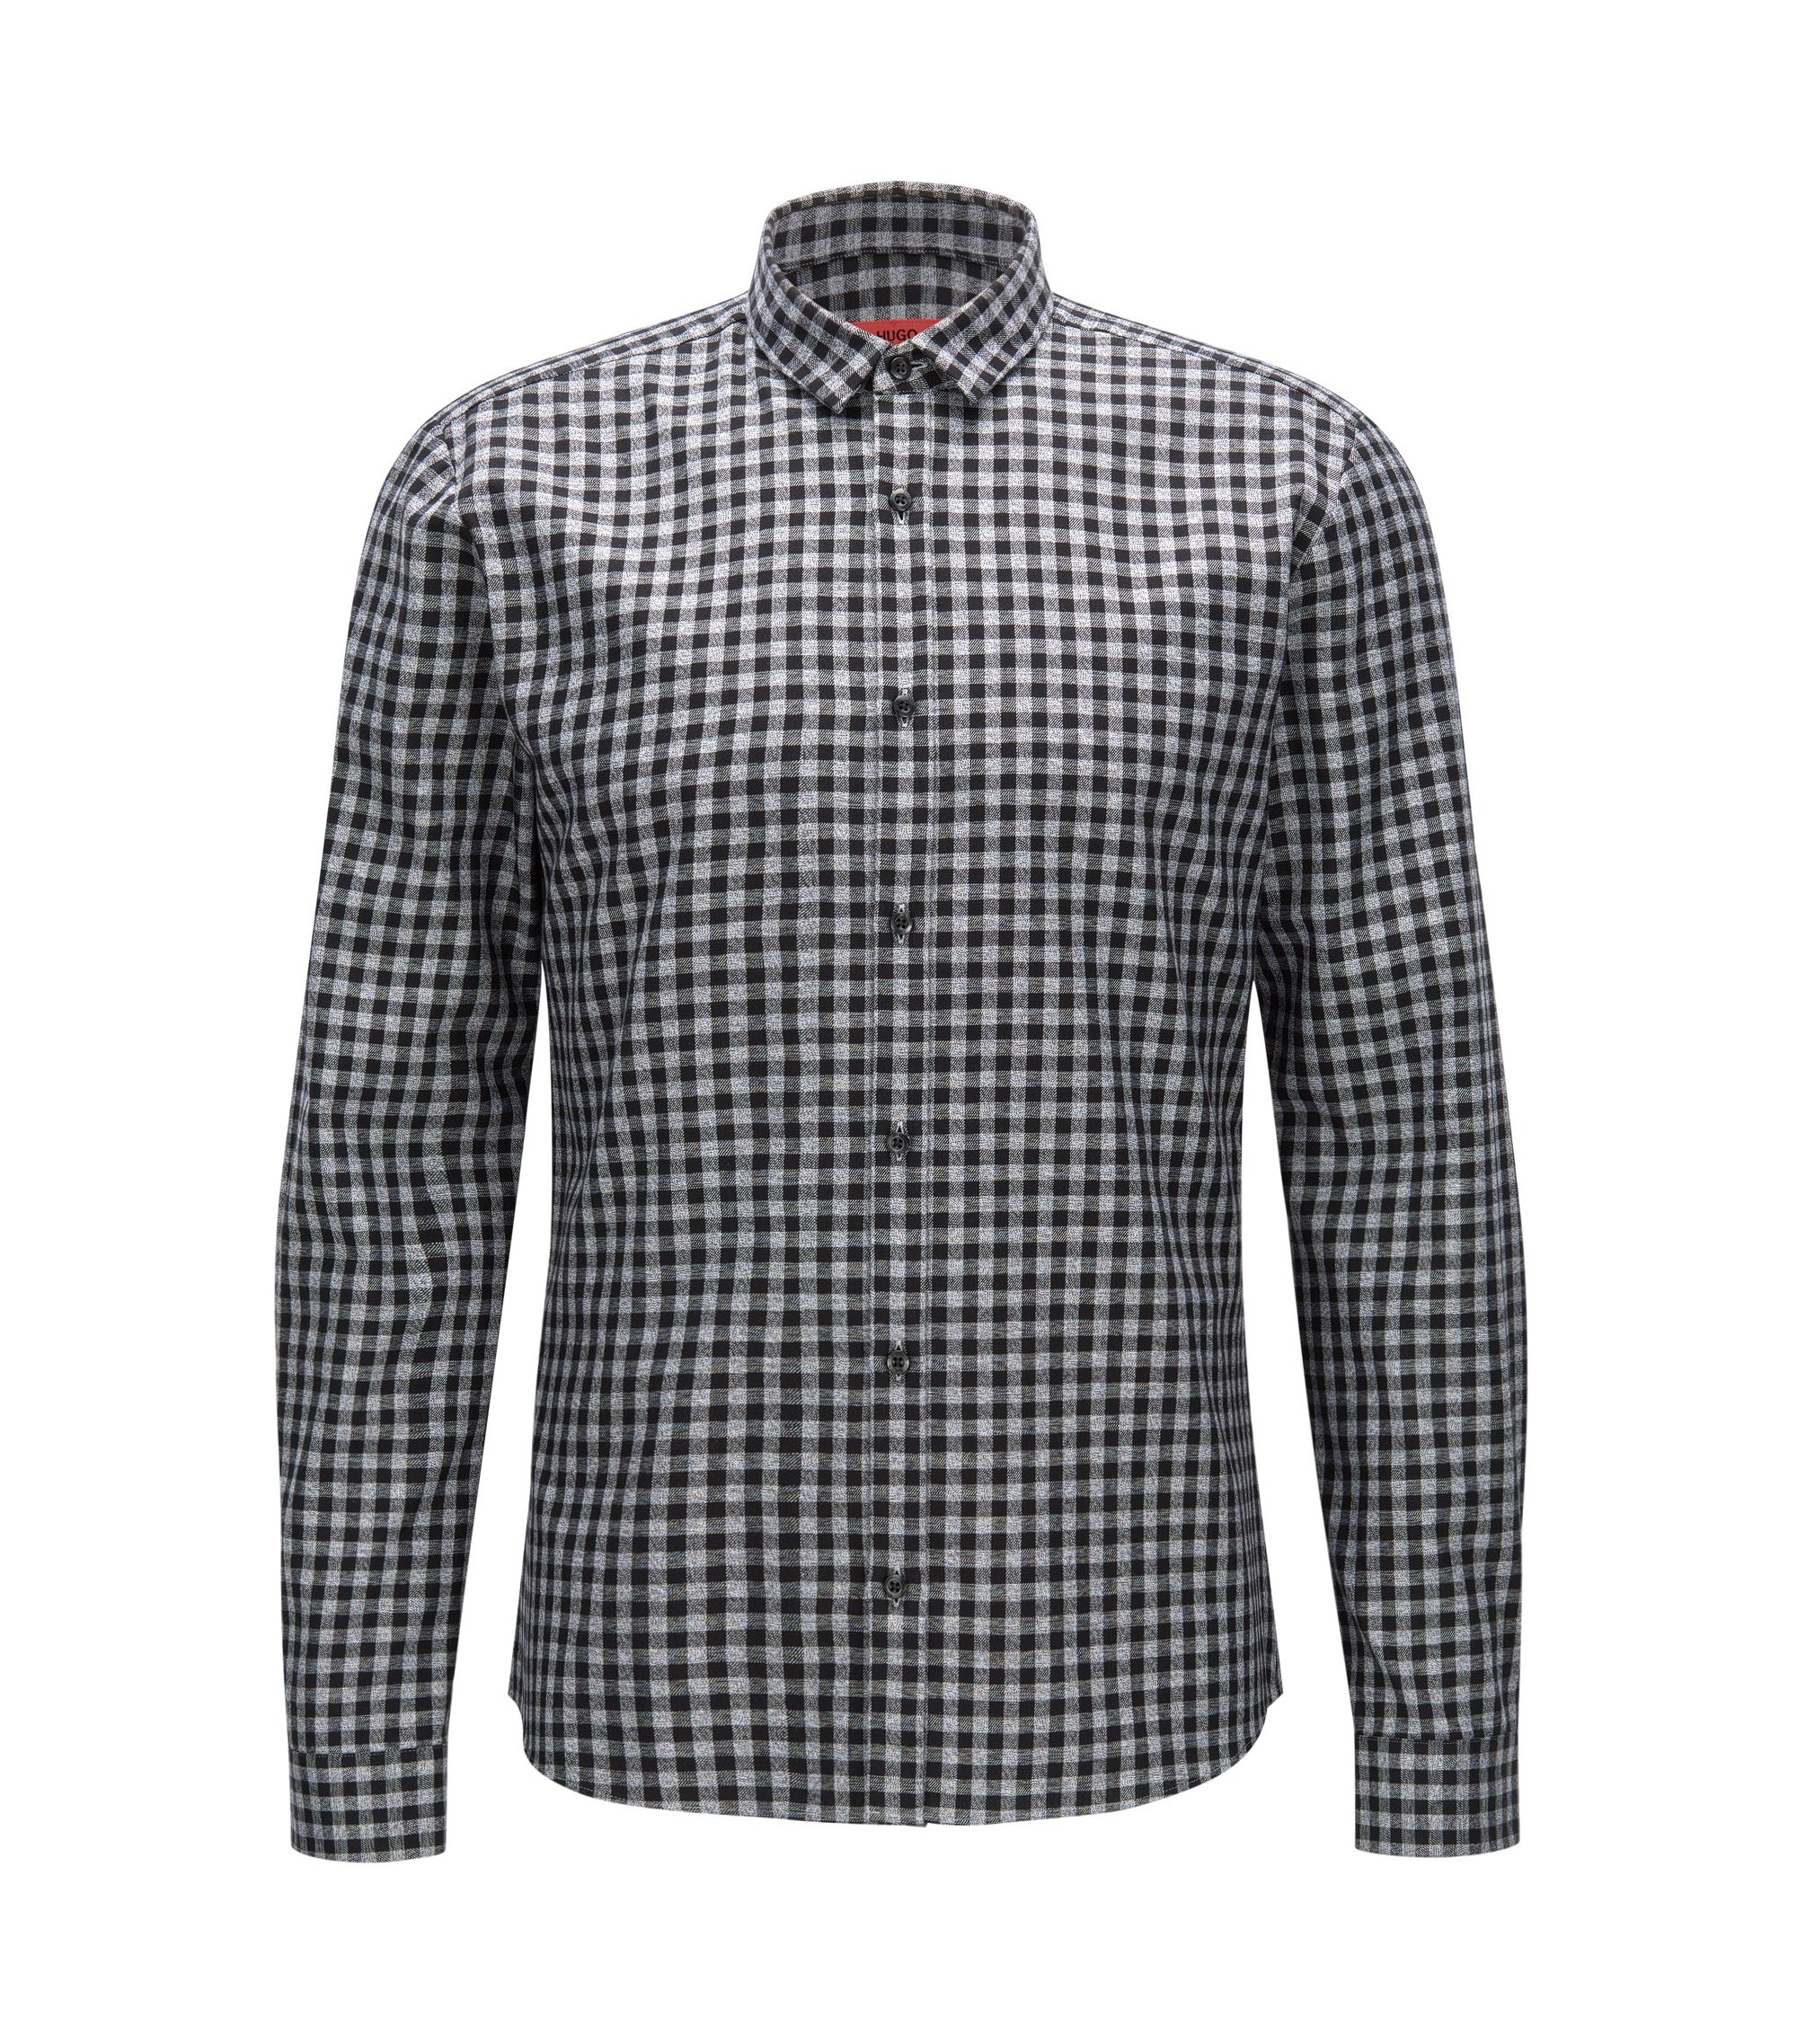 Gingham Cotton Button Down Shirt, Extra Slim Fit | Ero, Black